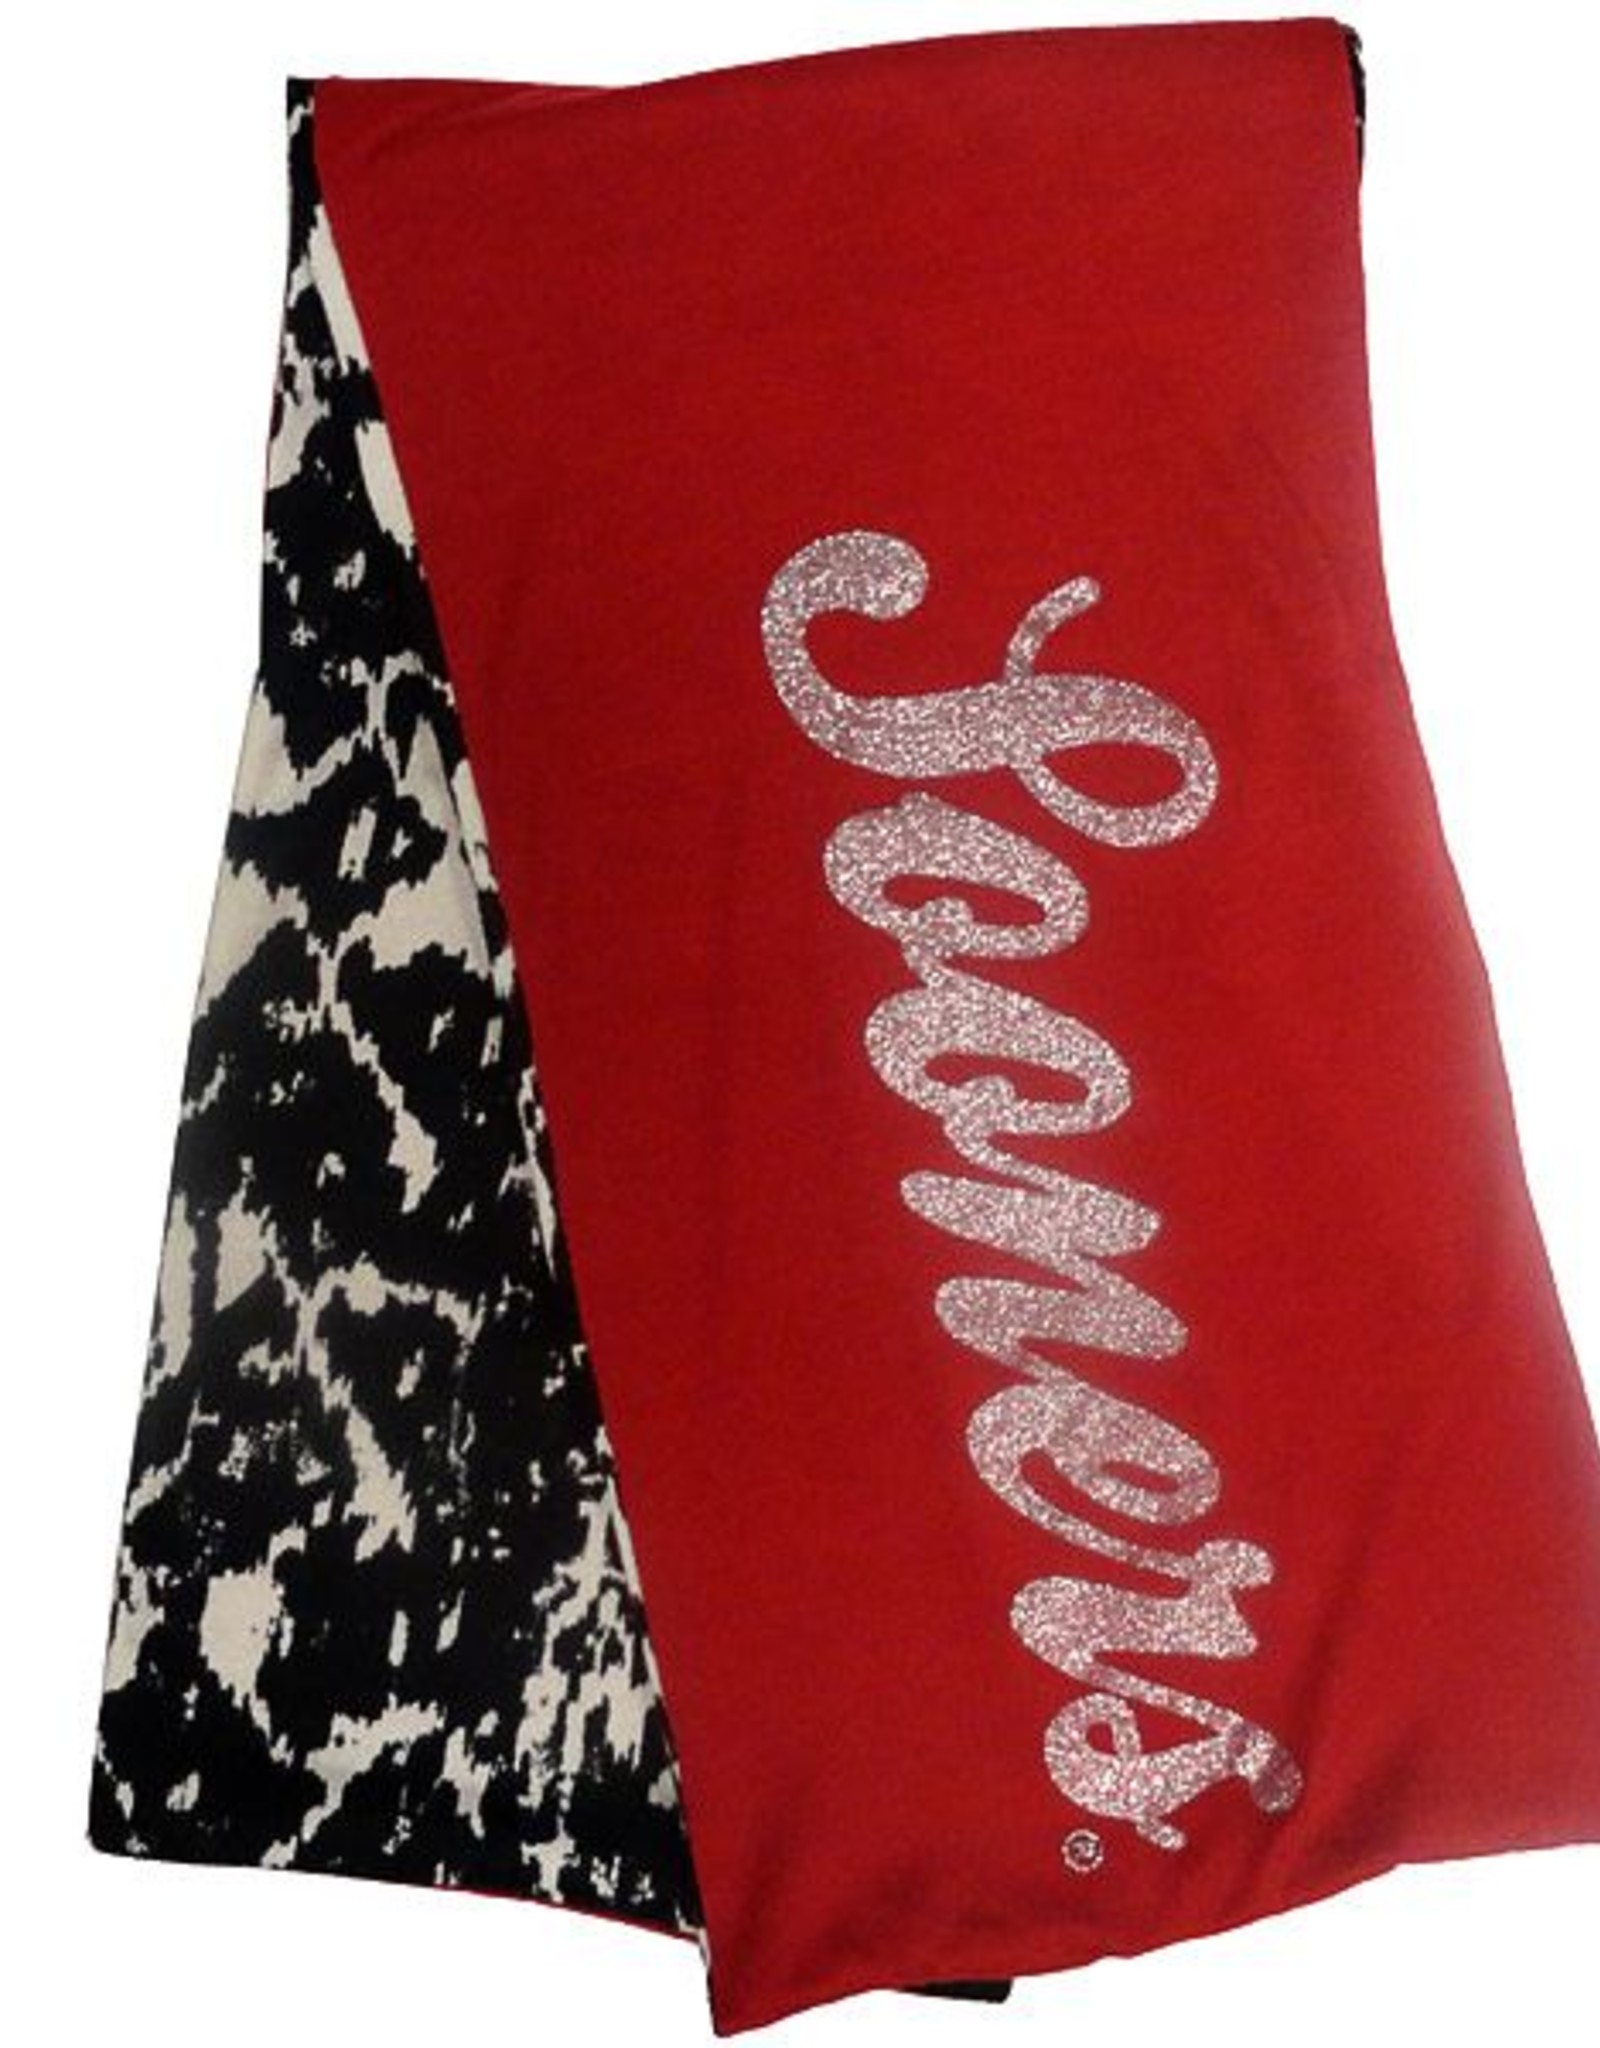 Gameday Couture Gameday Couture Crimson Sooners Glitter/Black & White Animal Print